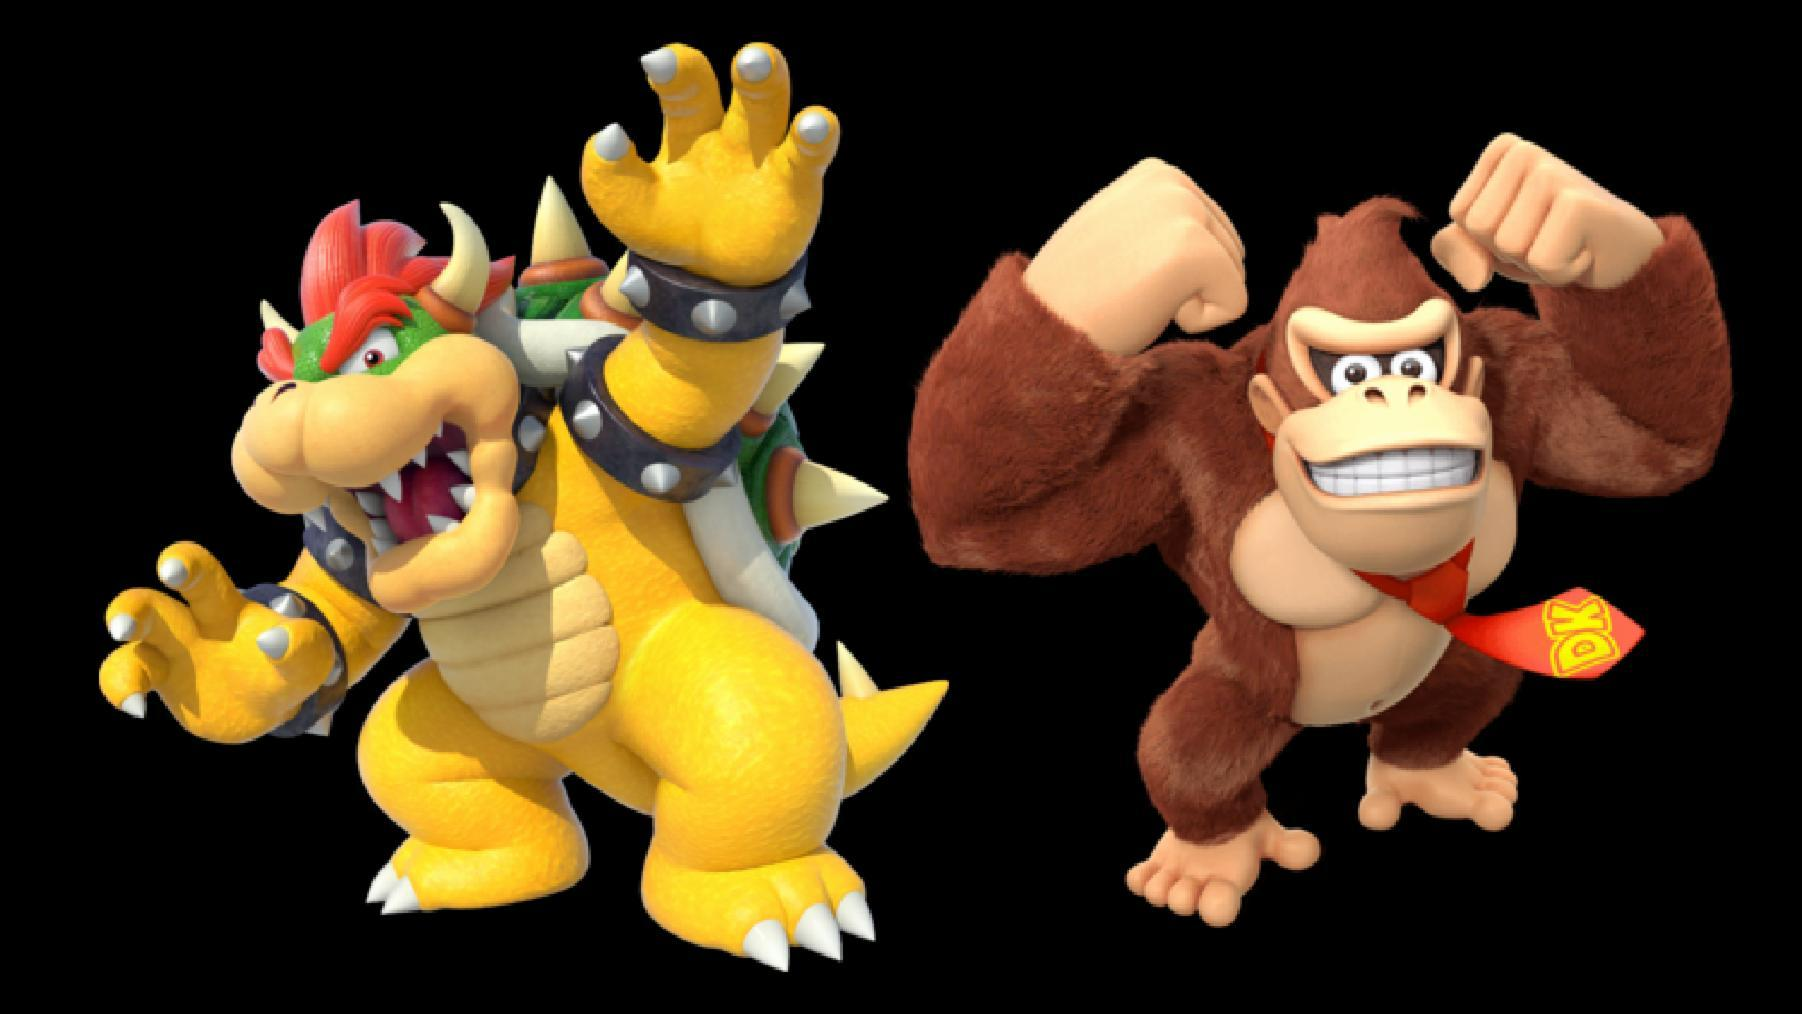 Bowser and Bowser Jr. vs Donkey Kong and Diddy Kong